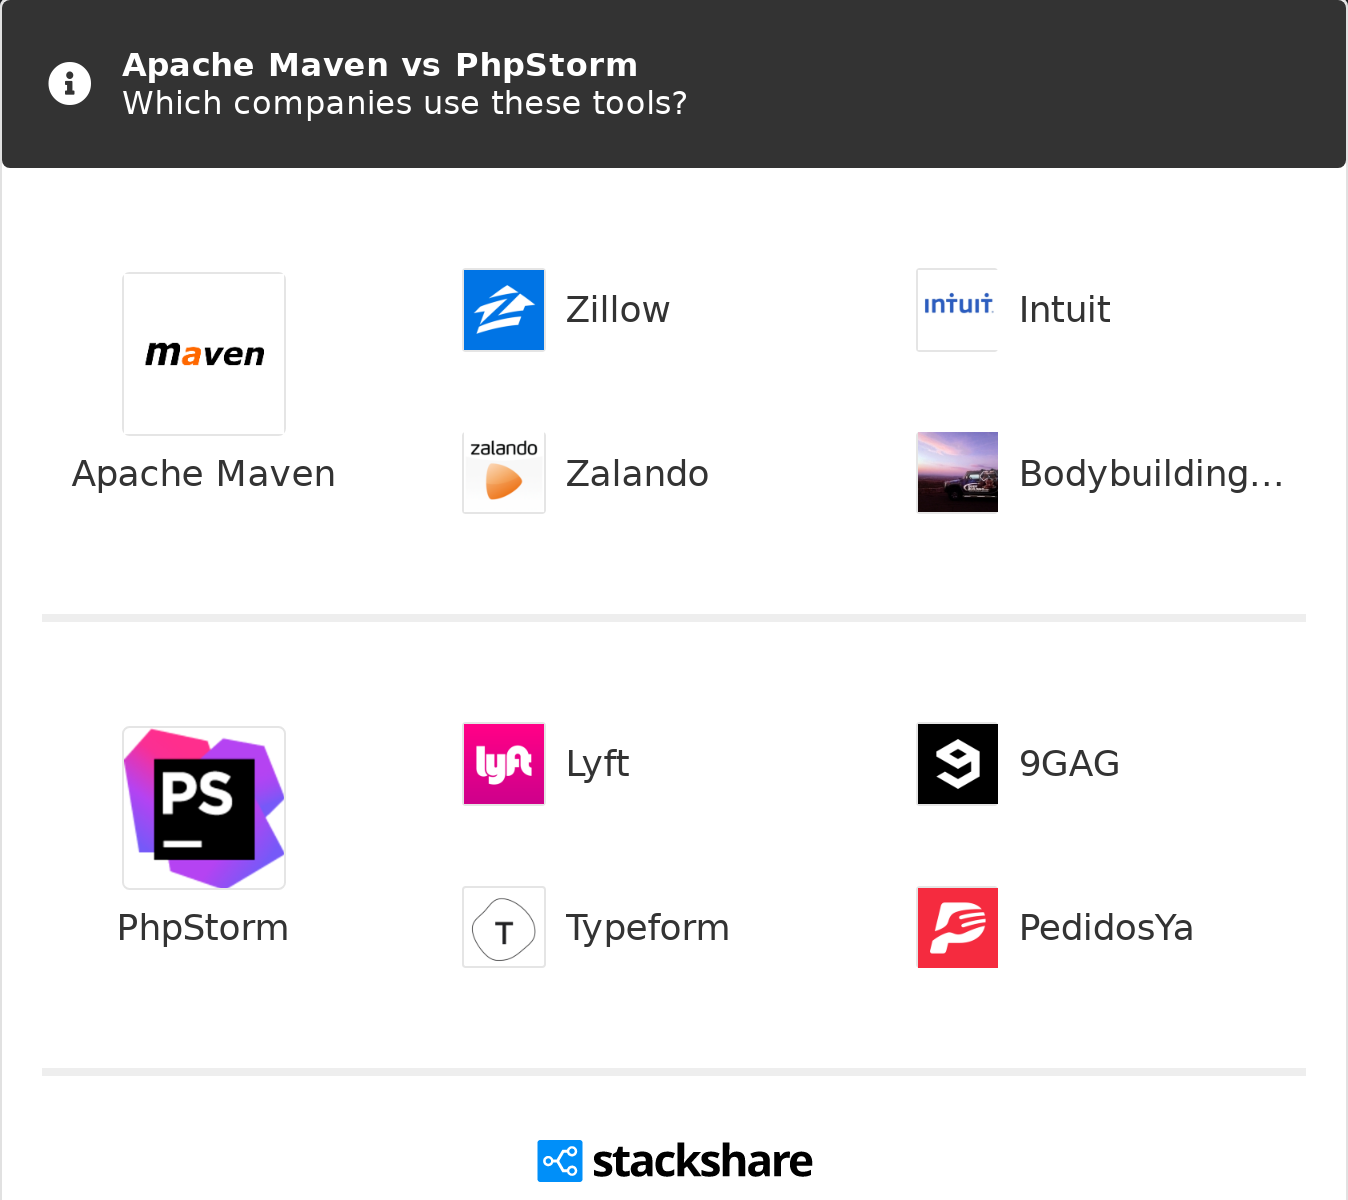 Apache Maven vs PhpStorm | What are the differences?